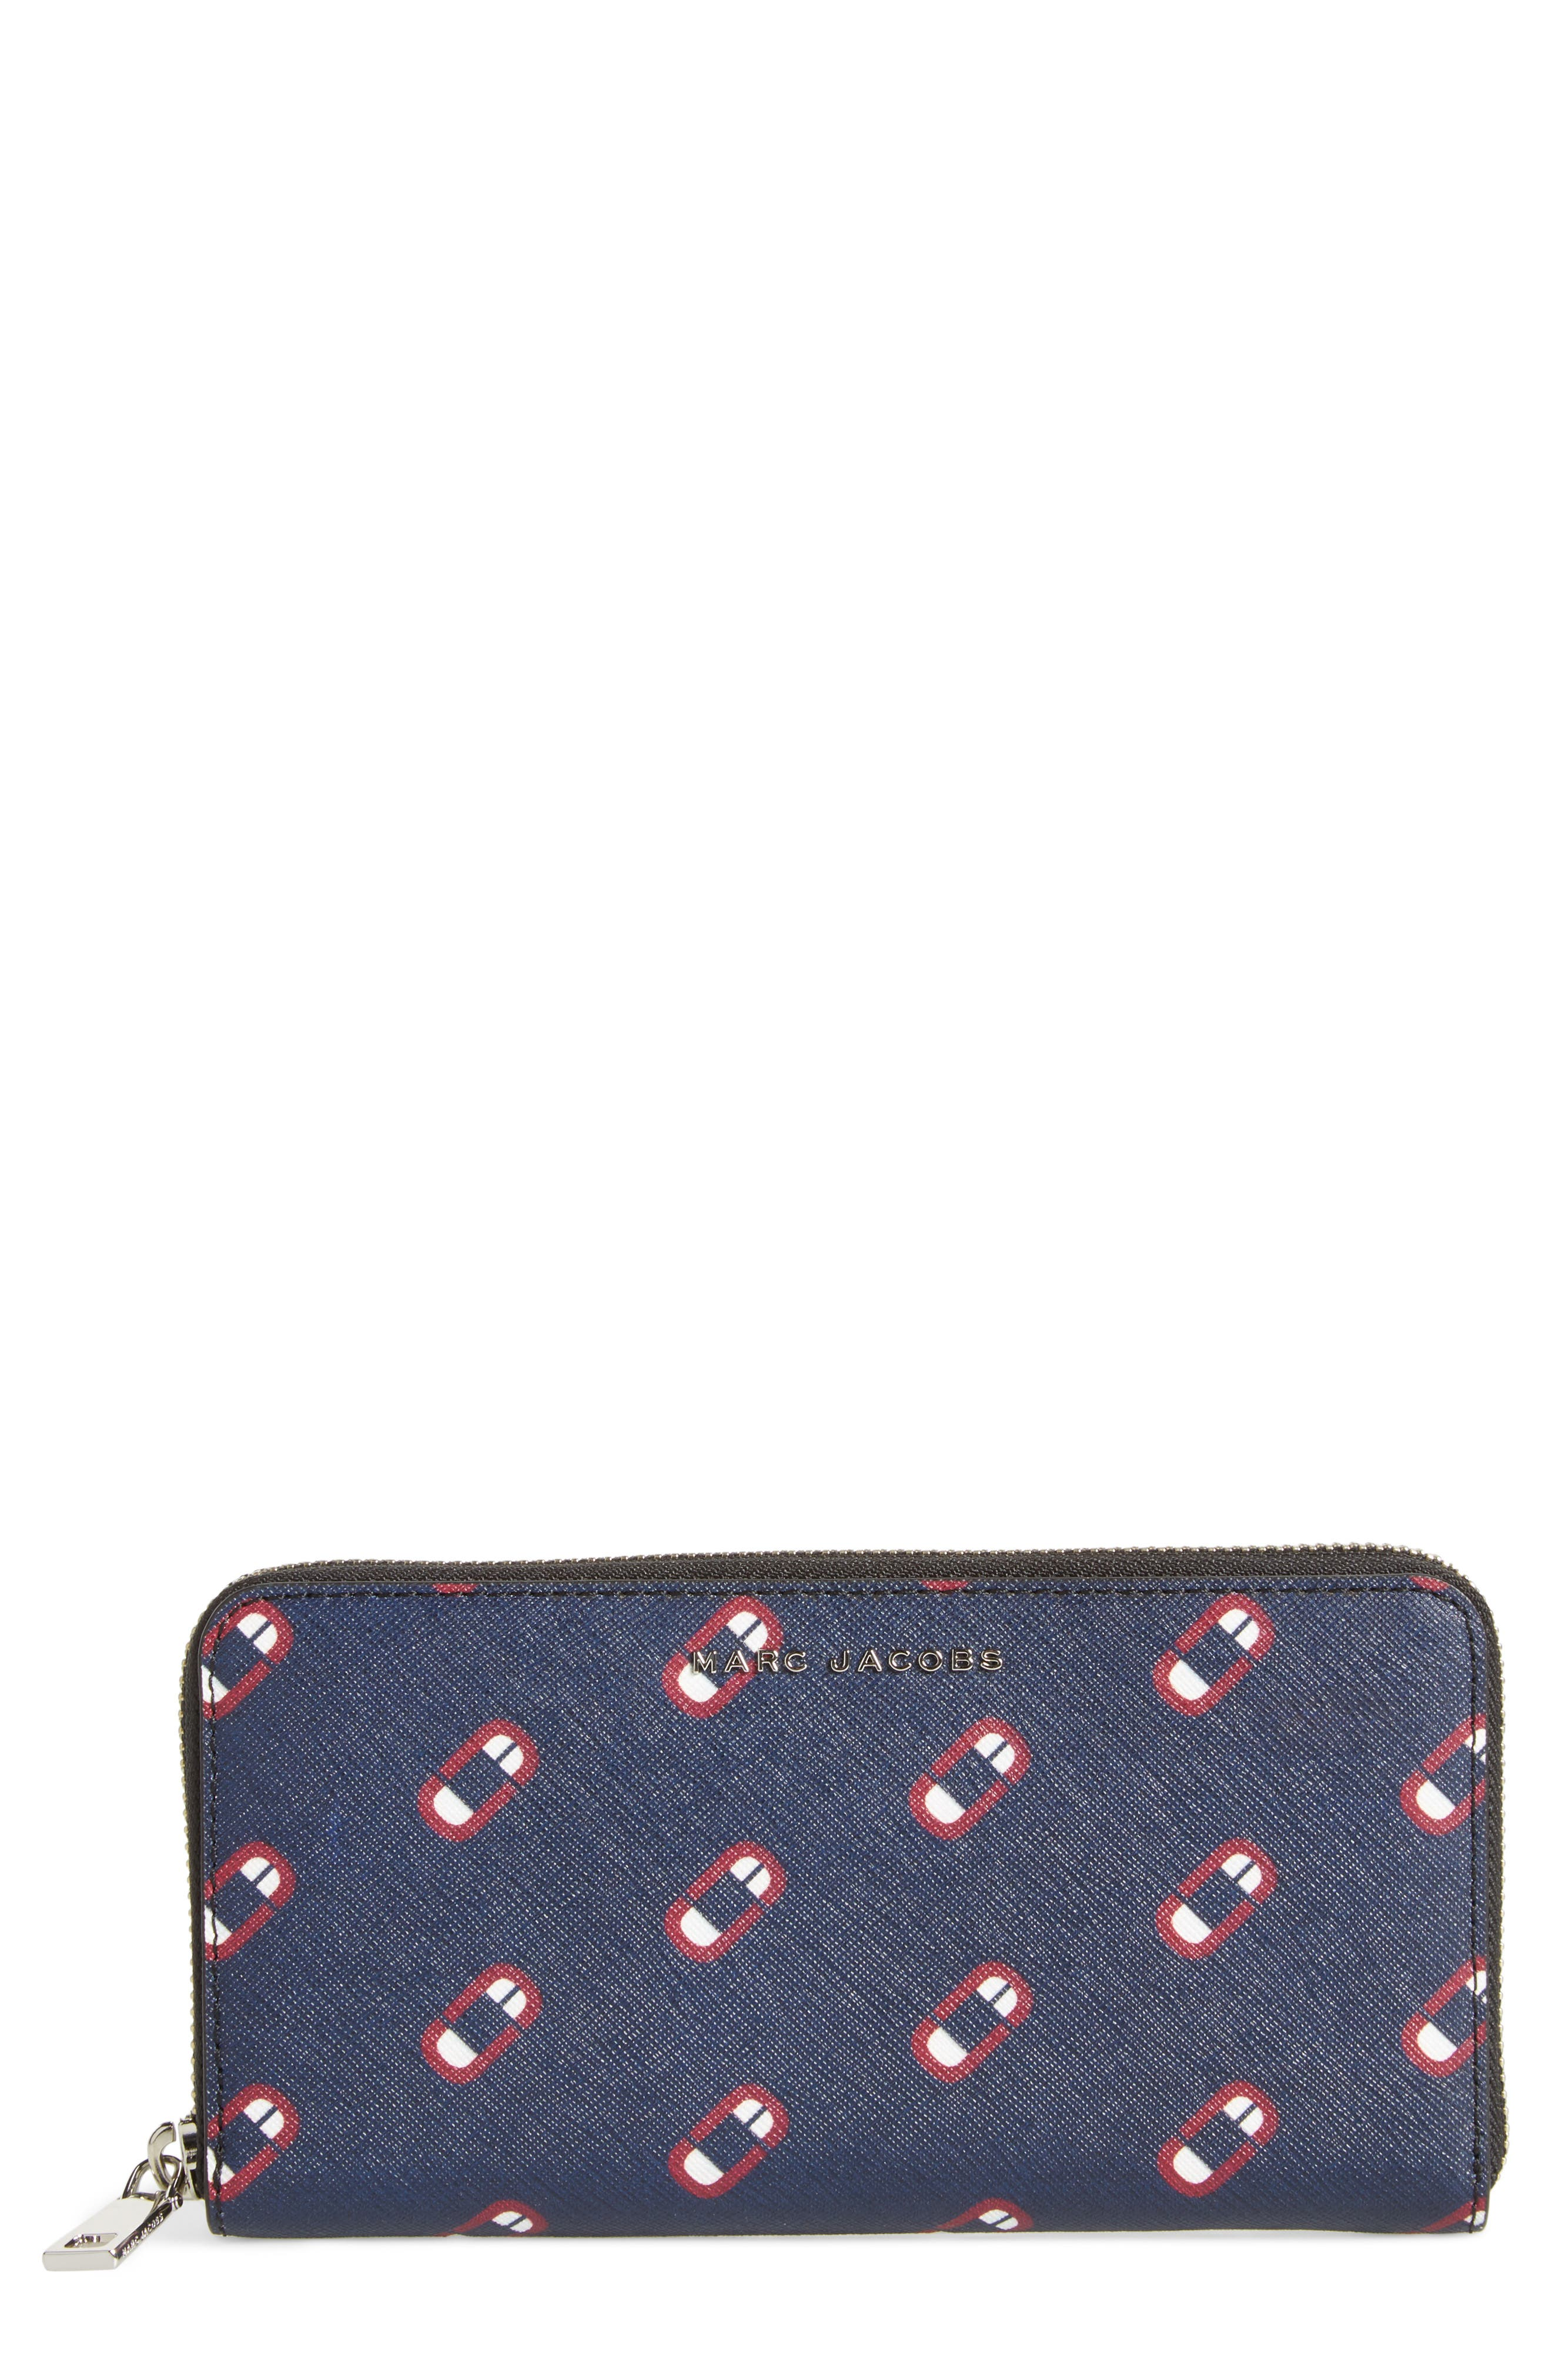 Main Image - MARC JACOBS Scream Saffiano Leather Continental Wallet